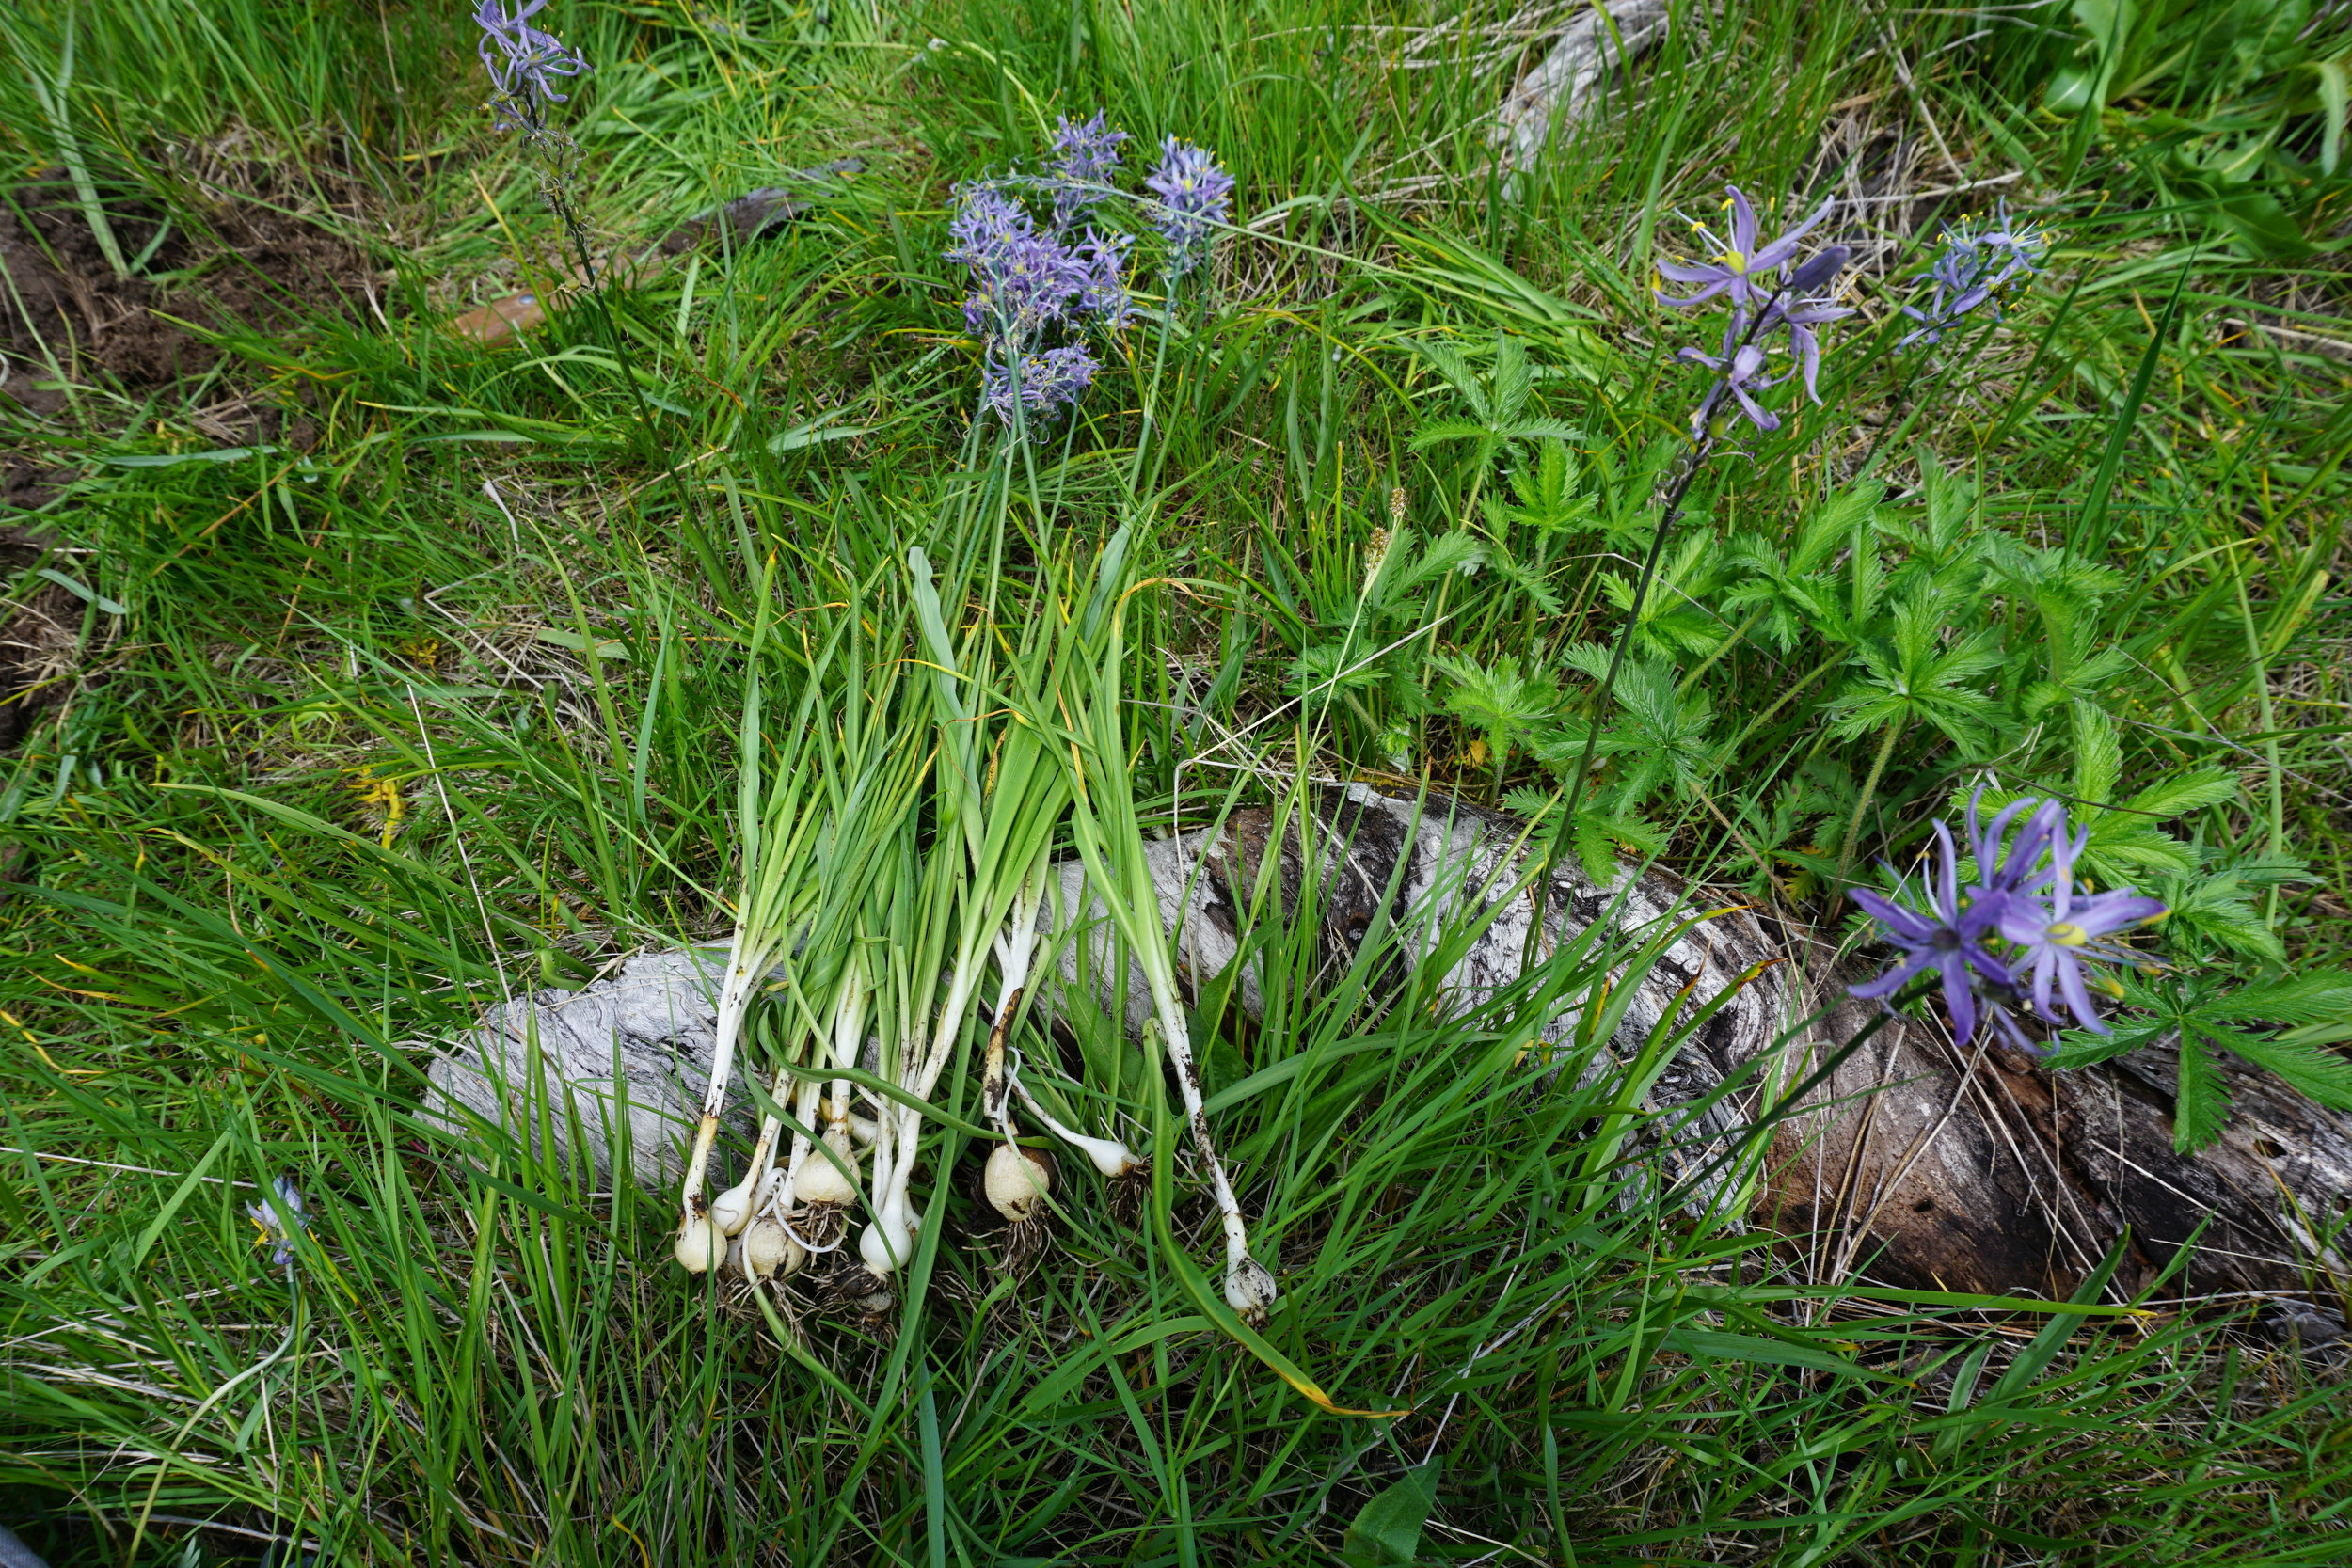 "Camas lily,  Camassia quamash,  is a staple first food among indigenous peoples throughout the western United States. According to an interview with a local native elder in 1933, the immediate area near Vesper Meadow was know as a ""favorite camas meadow"" to the native Latgawa people. Native people, specifically women, would spend weeks in the fall tending the meadows and promoting healthy camas growth. The bulb of this lily is a sweet and starchy treat, making it a rich food source and a valuable part of the inextricable land-food-people web of life.  photo courtesy of the Hawthorne Institute."